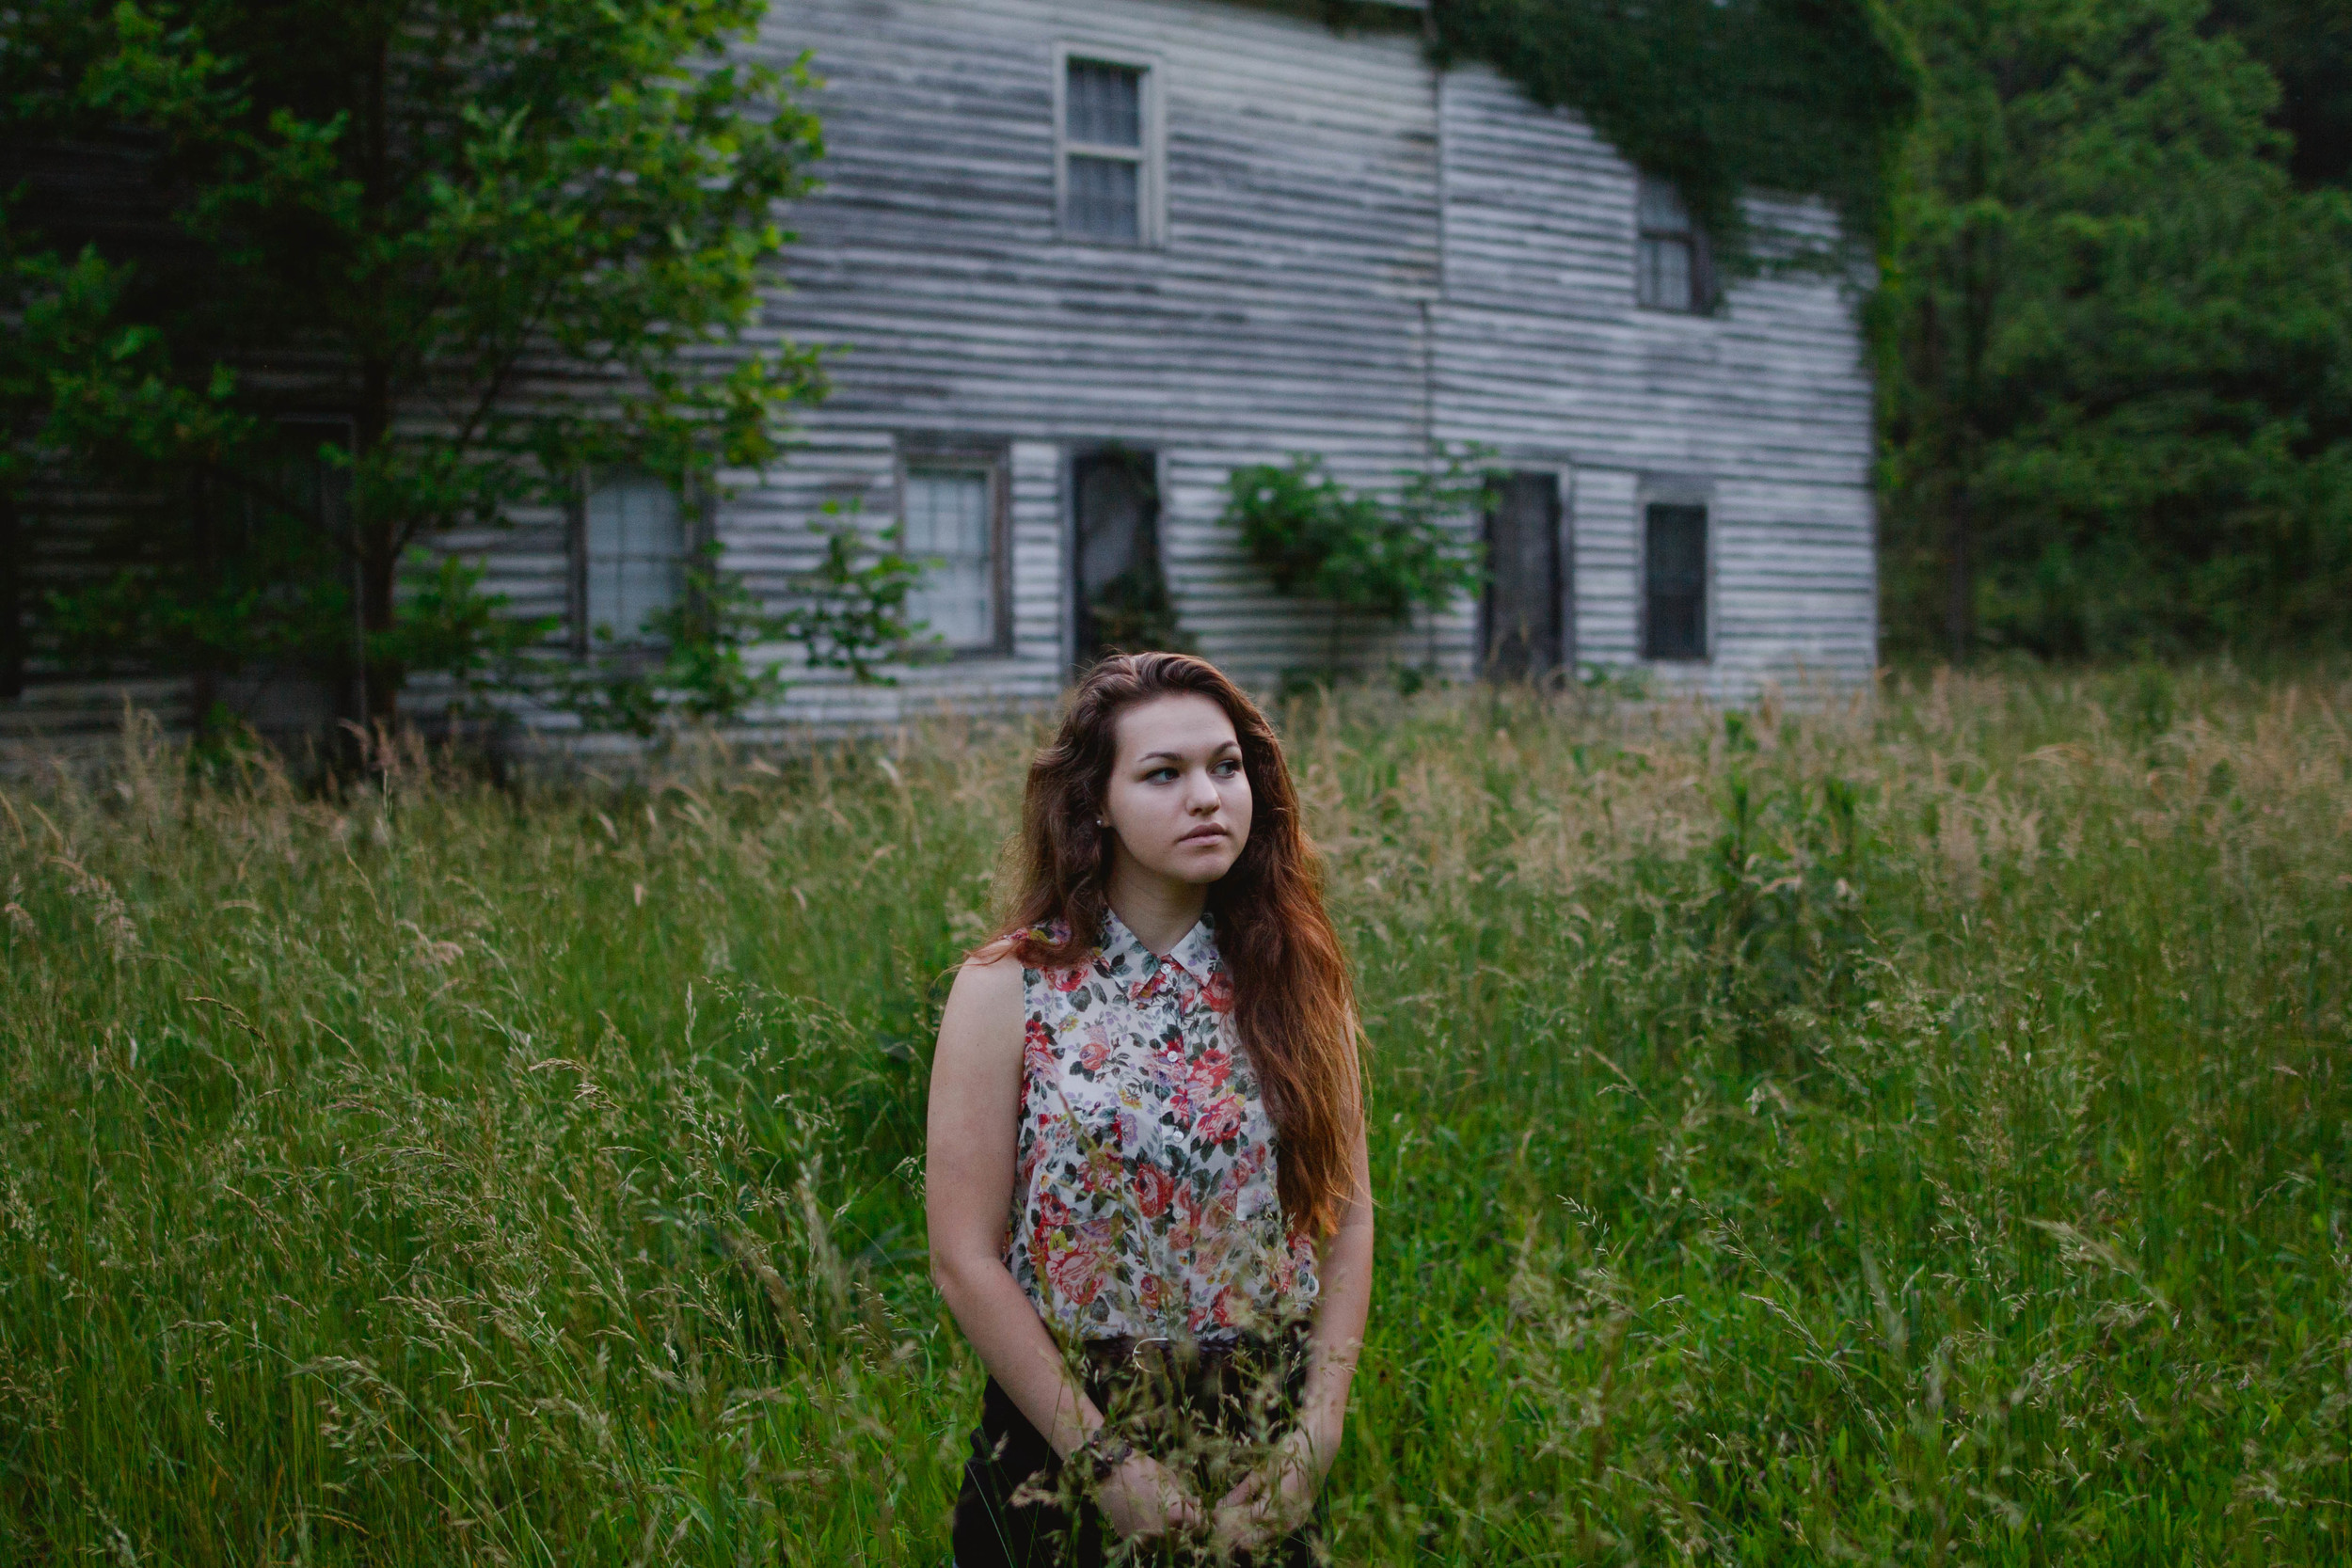 We found this abandoned house on our way out and we both wanted to know when we could move in.